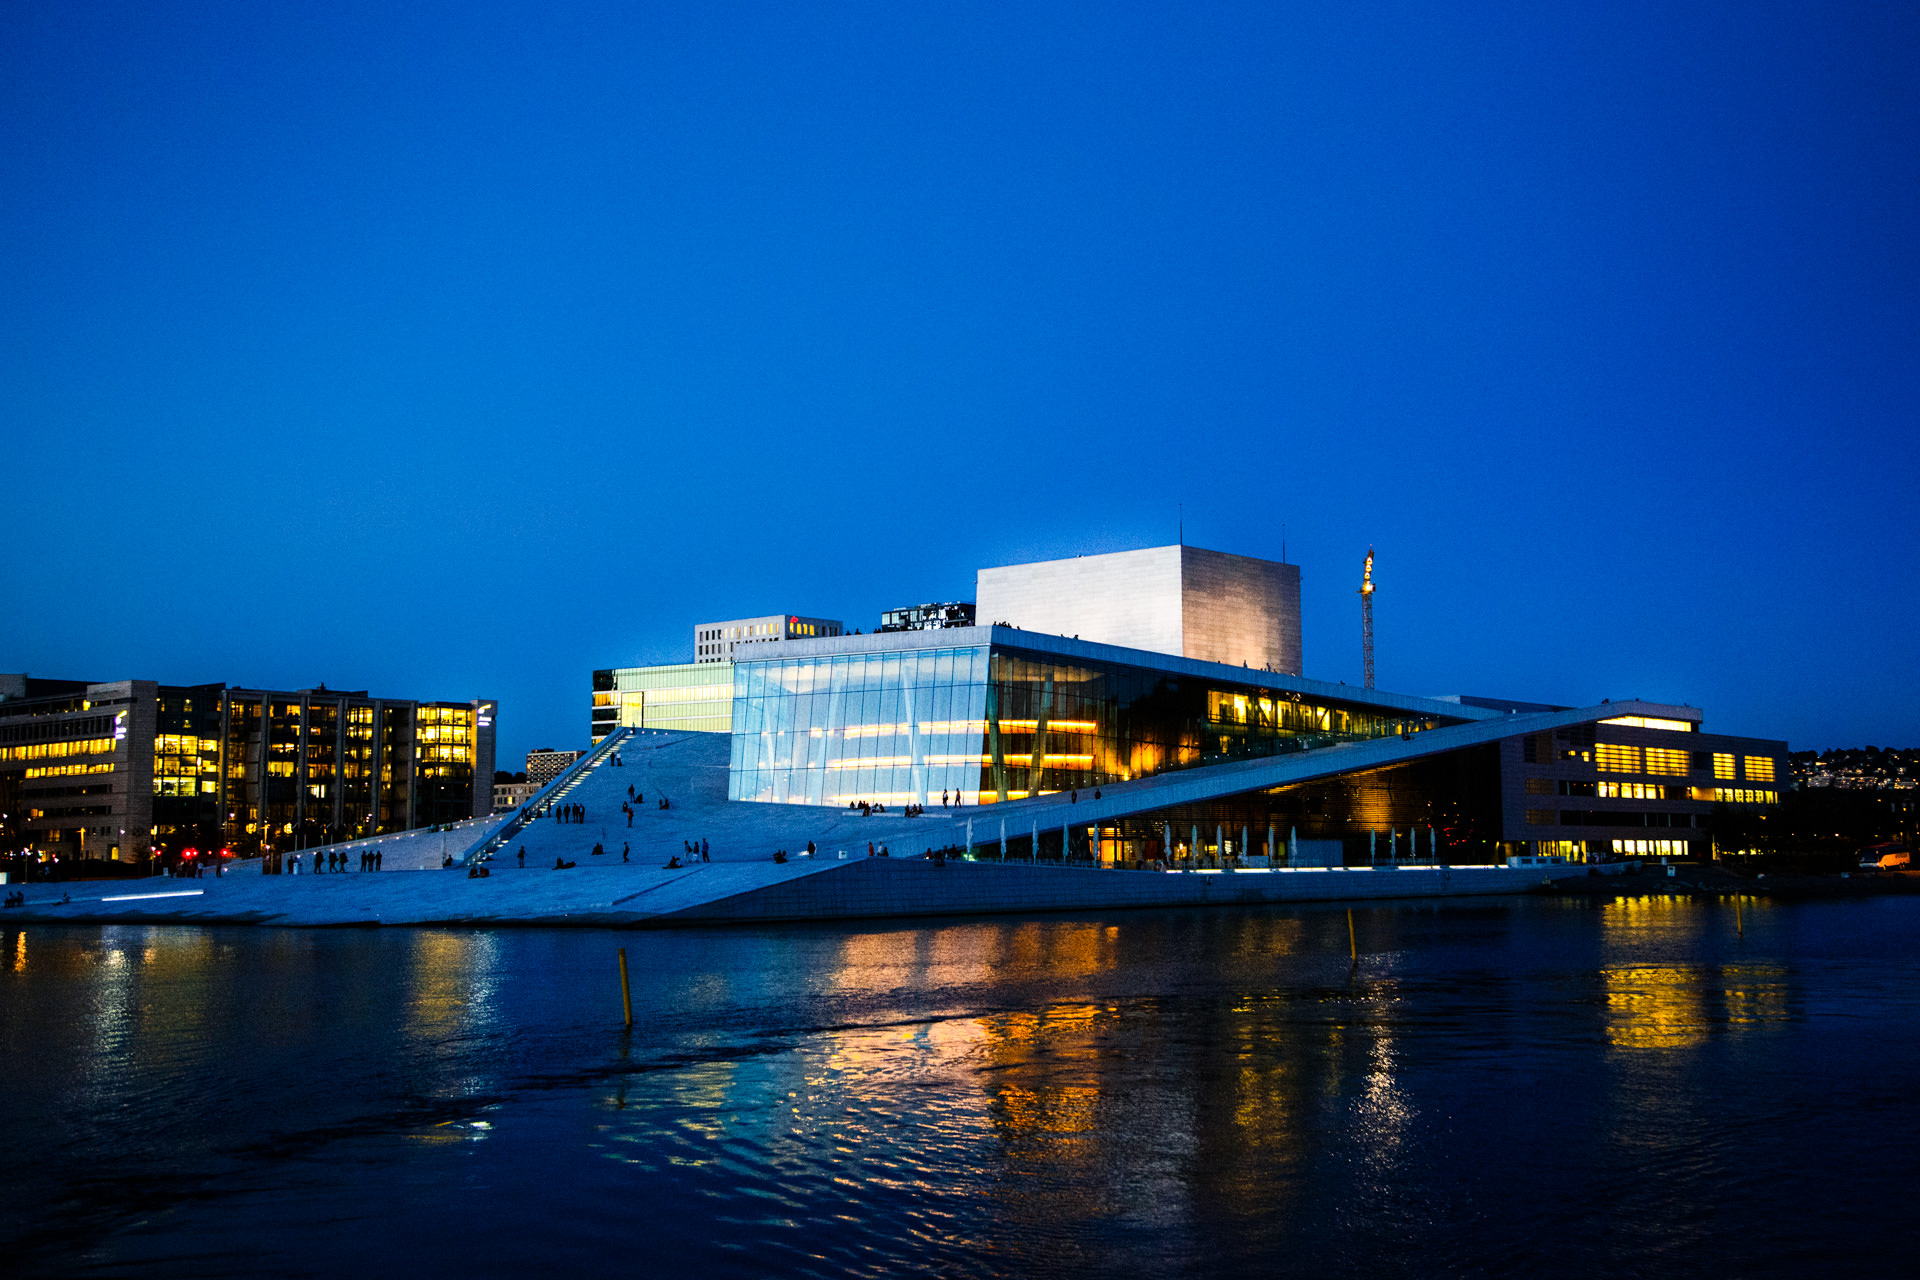 The  Oslo Opera House  as the tour draws to a close.